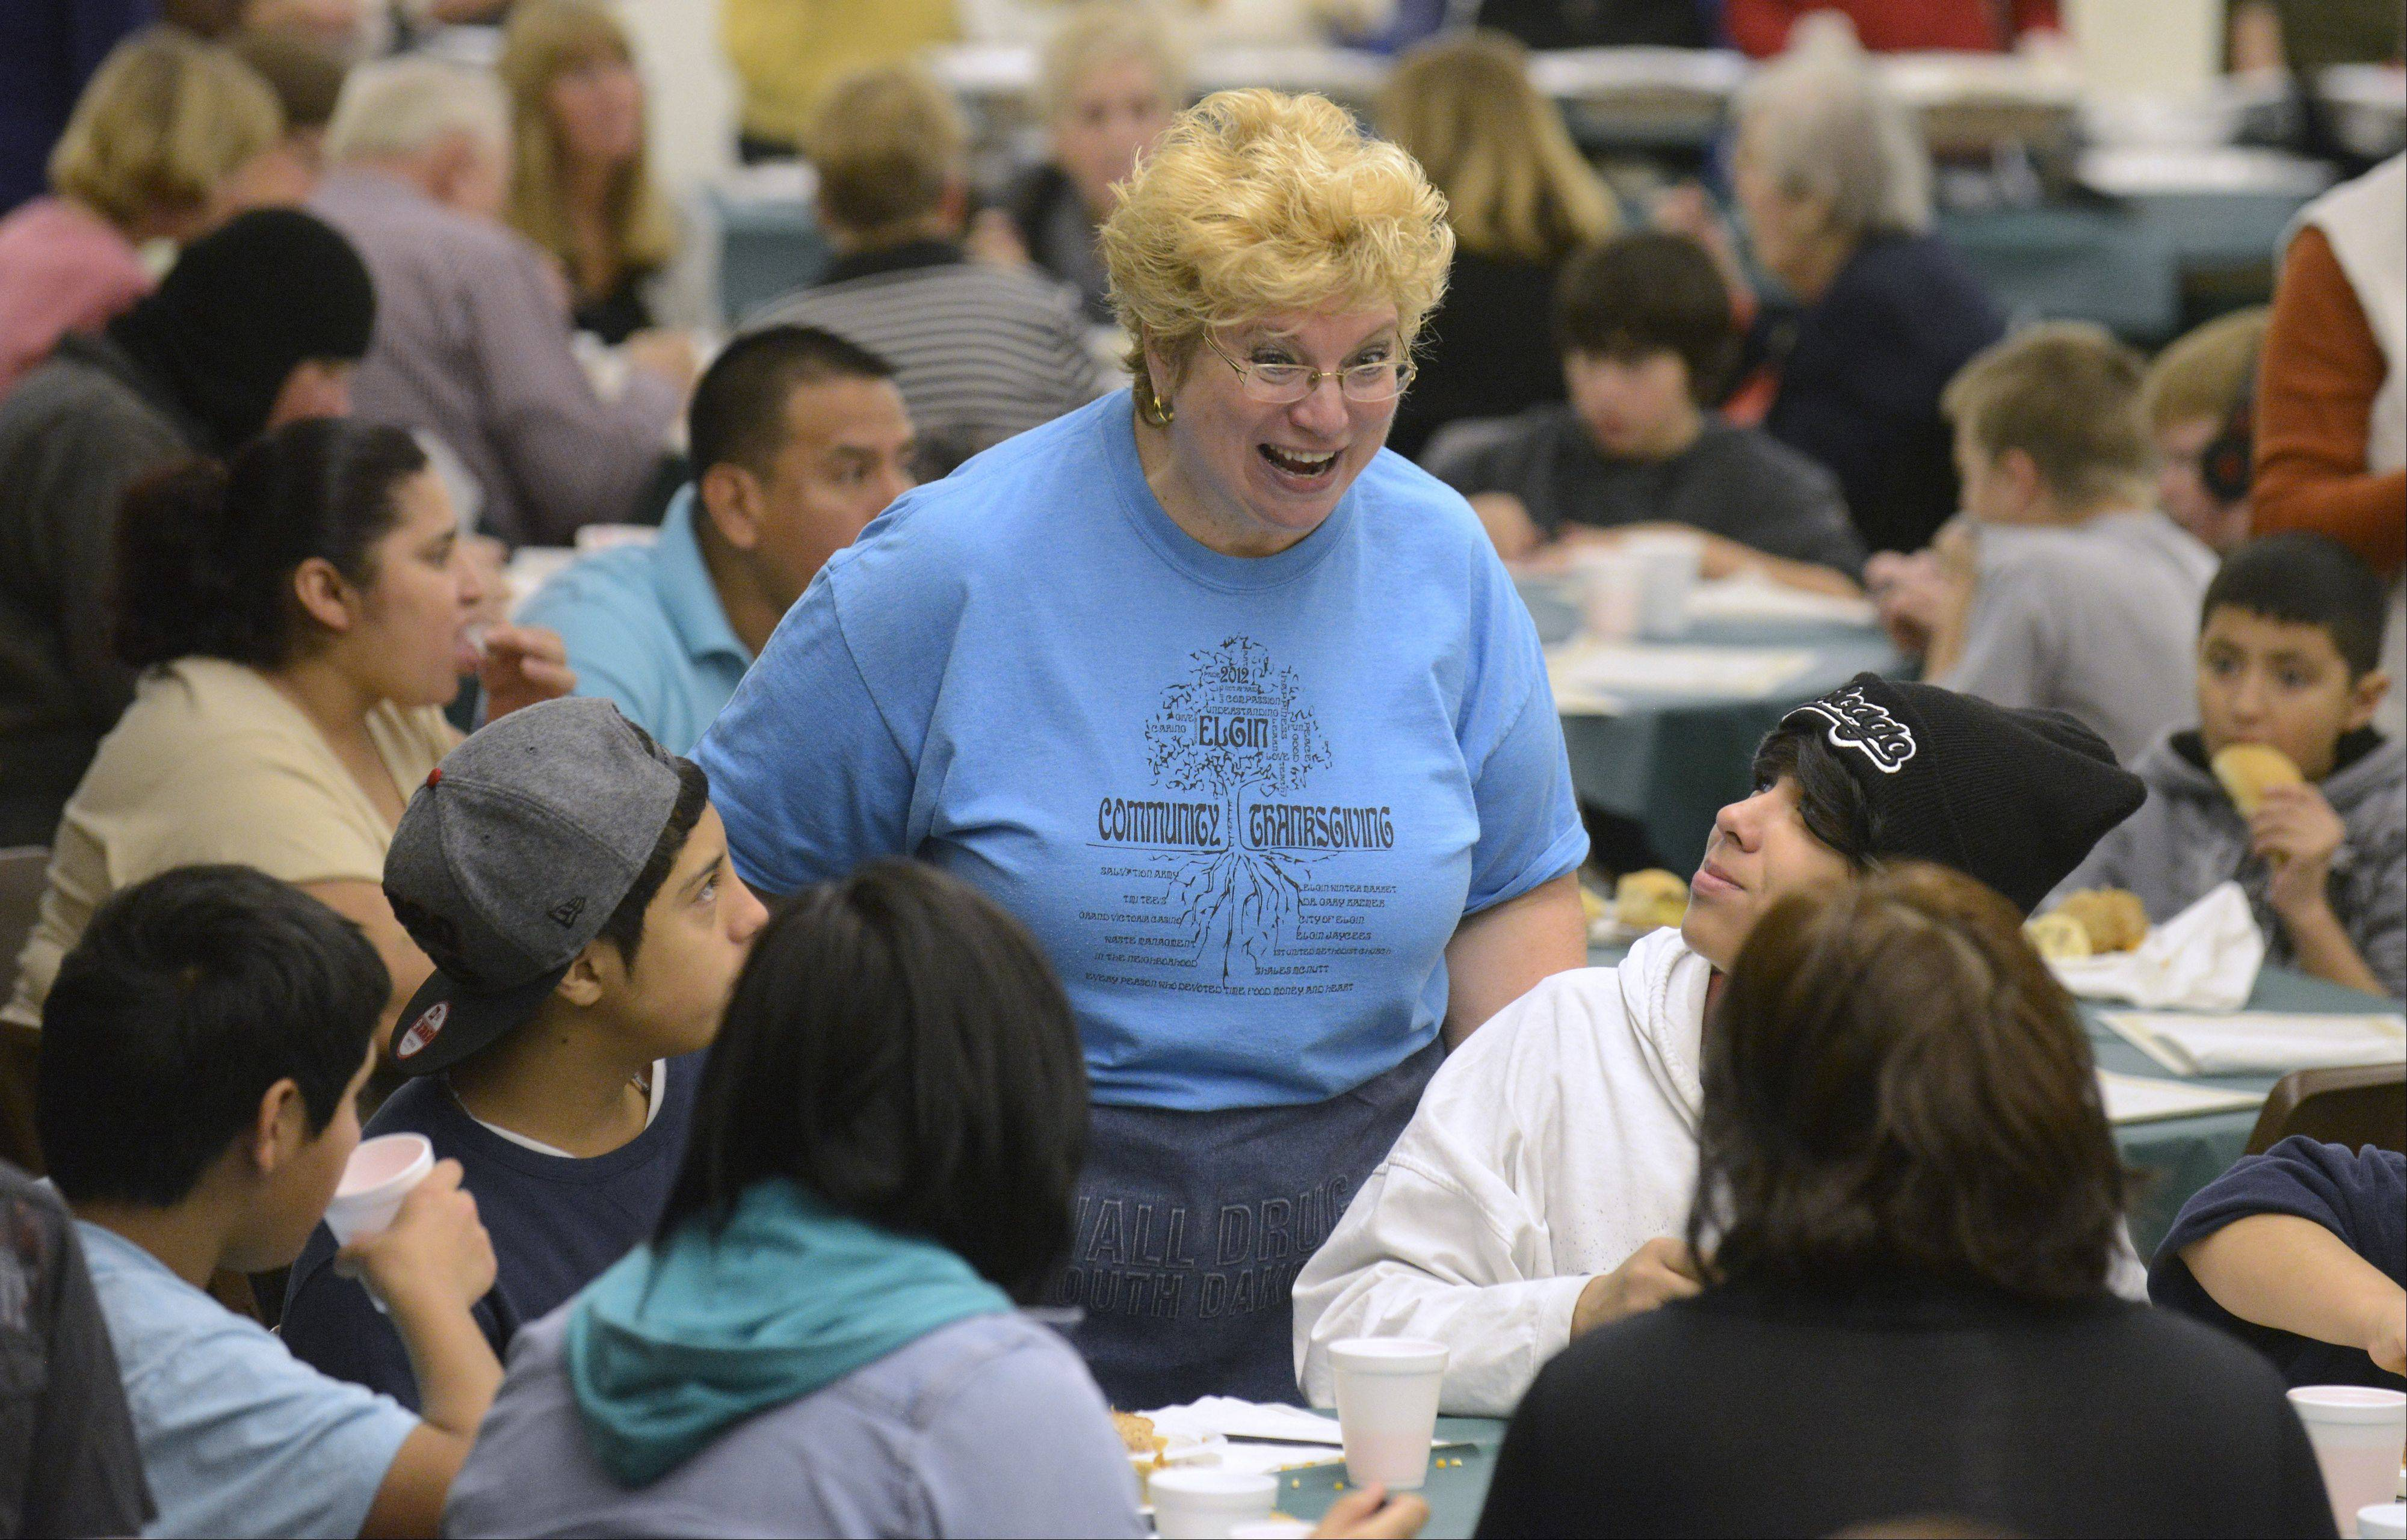 Diane Fraser of Elgin makes her way around tables chatting with diners at the Elgin Community Thanksgiving Dinner. This is her fourth year volunteering and she arrived two hours early to help prep for the 11 a.m. start.